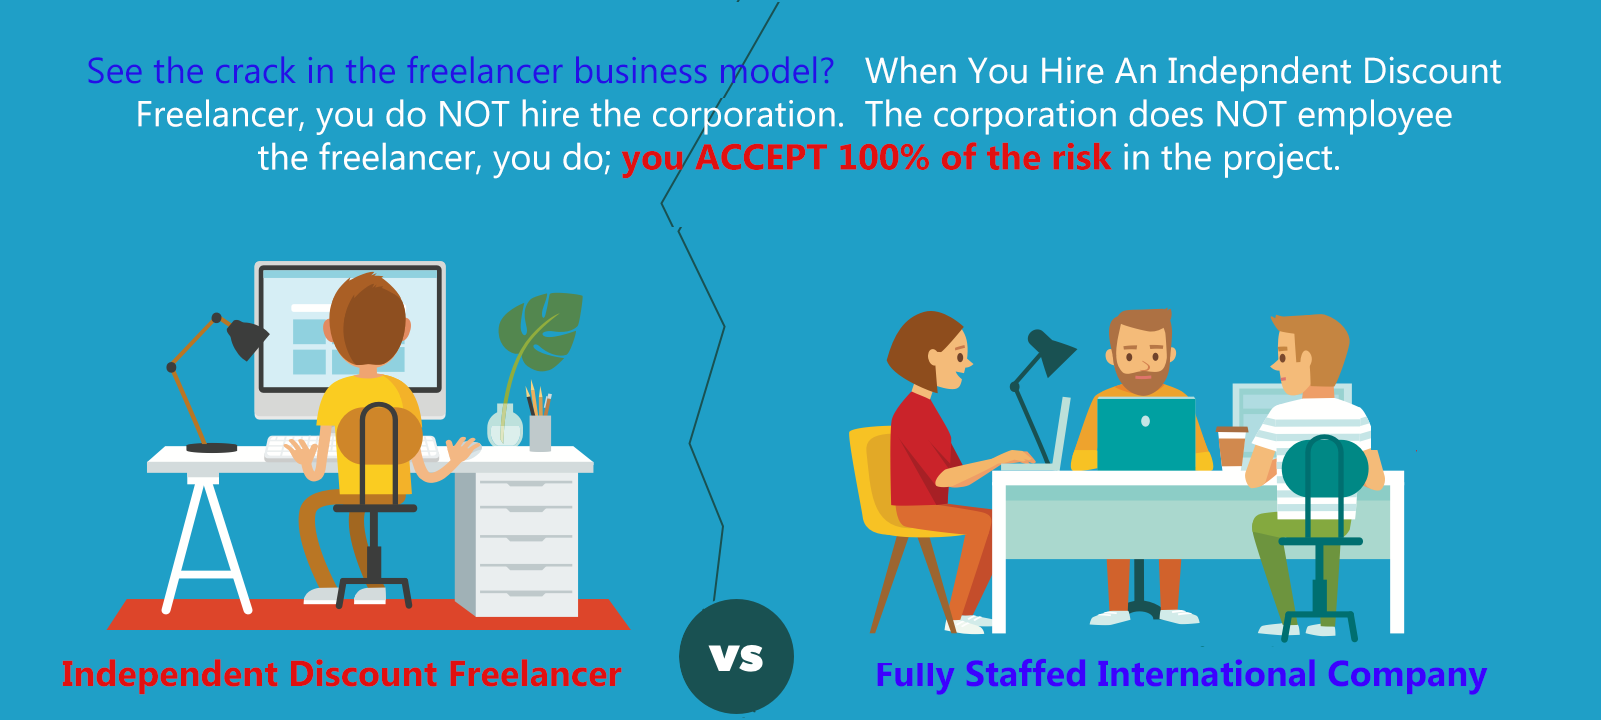 Avoid Discount Freelancers Hire a Corporation